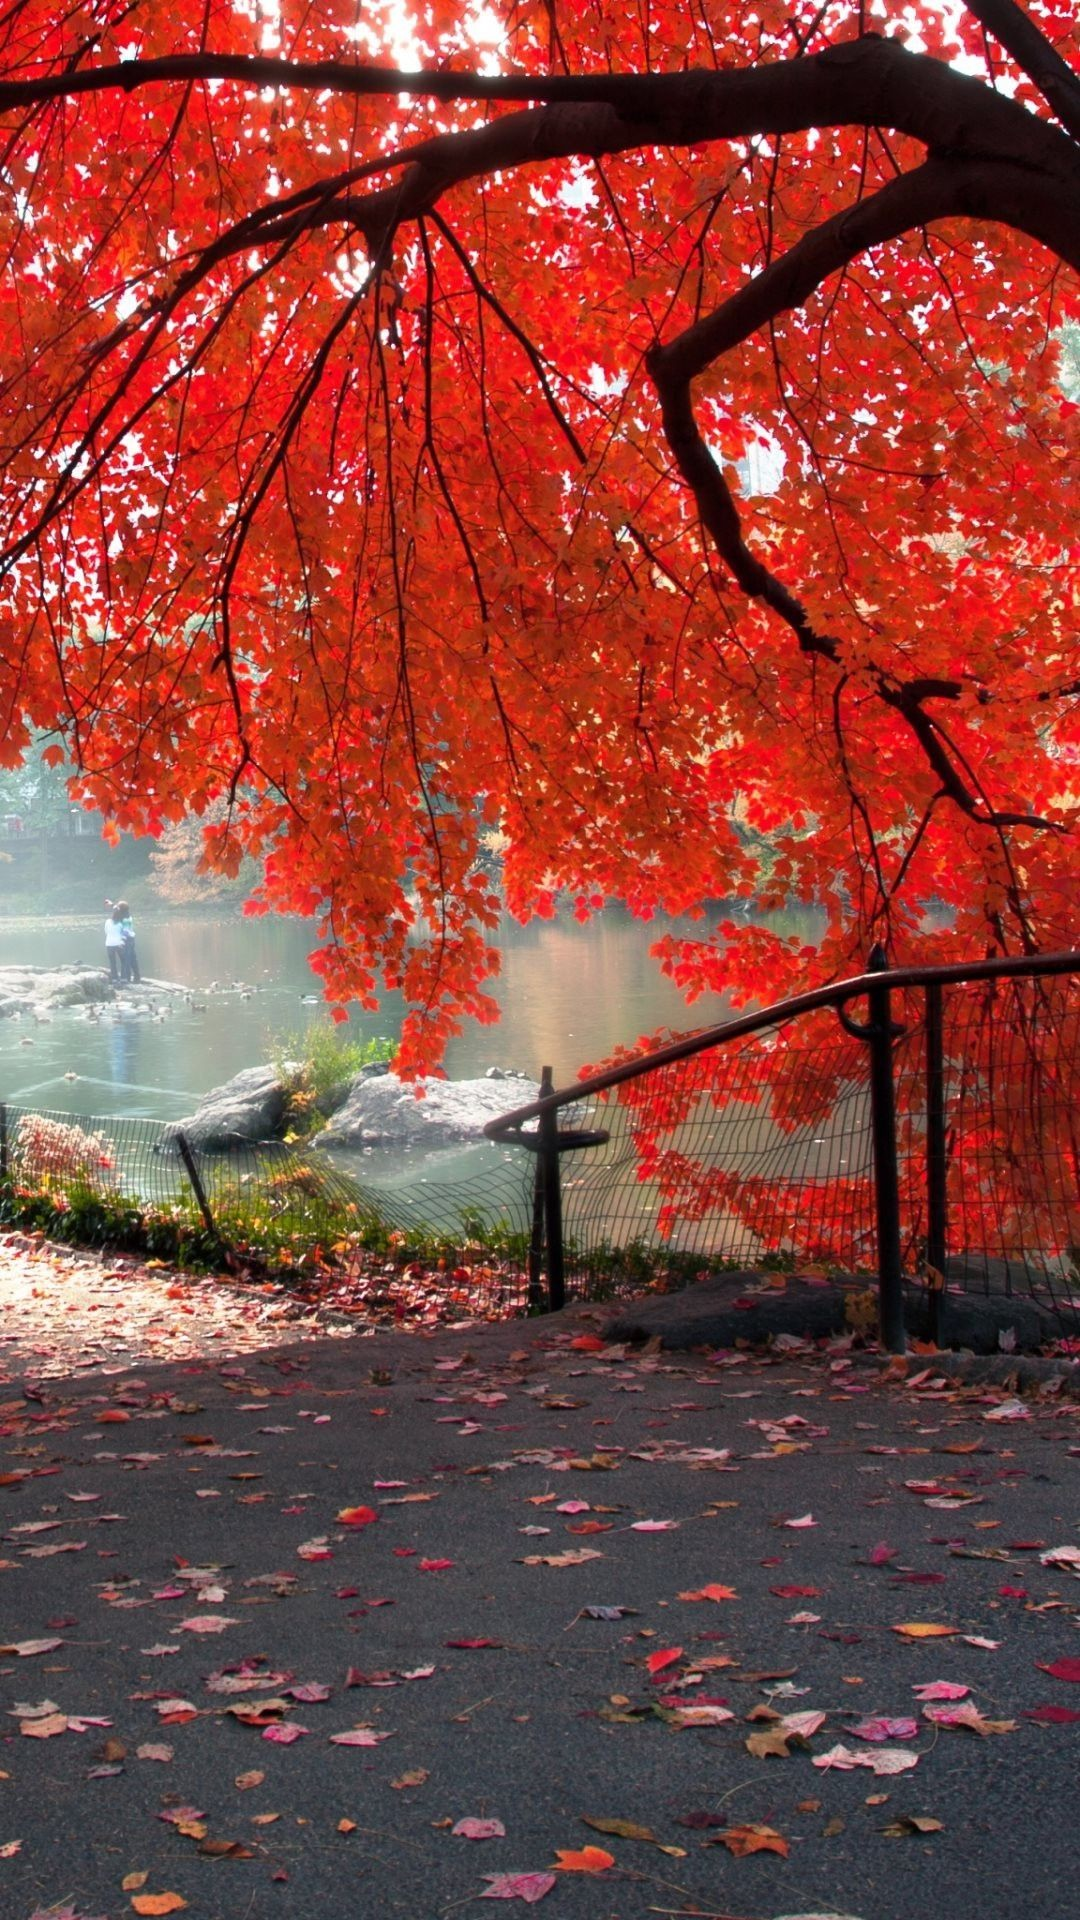 1080x1920 Park bench in autumn Wallpaper Wide Wallpaper Collections